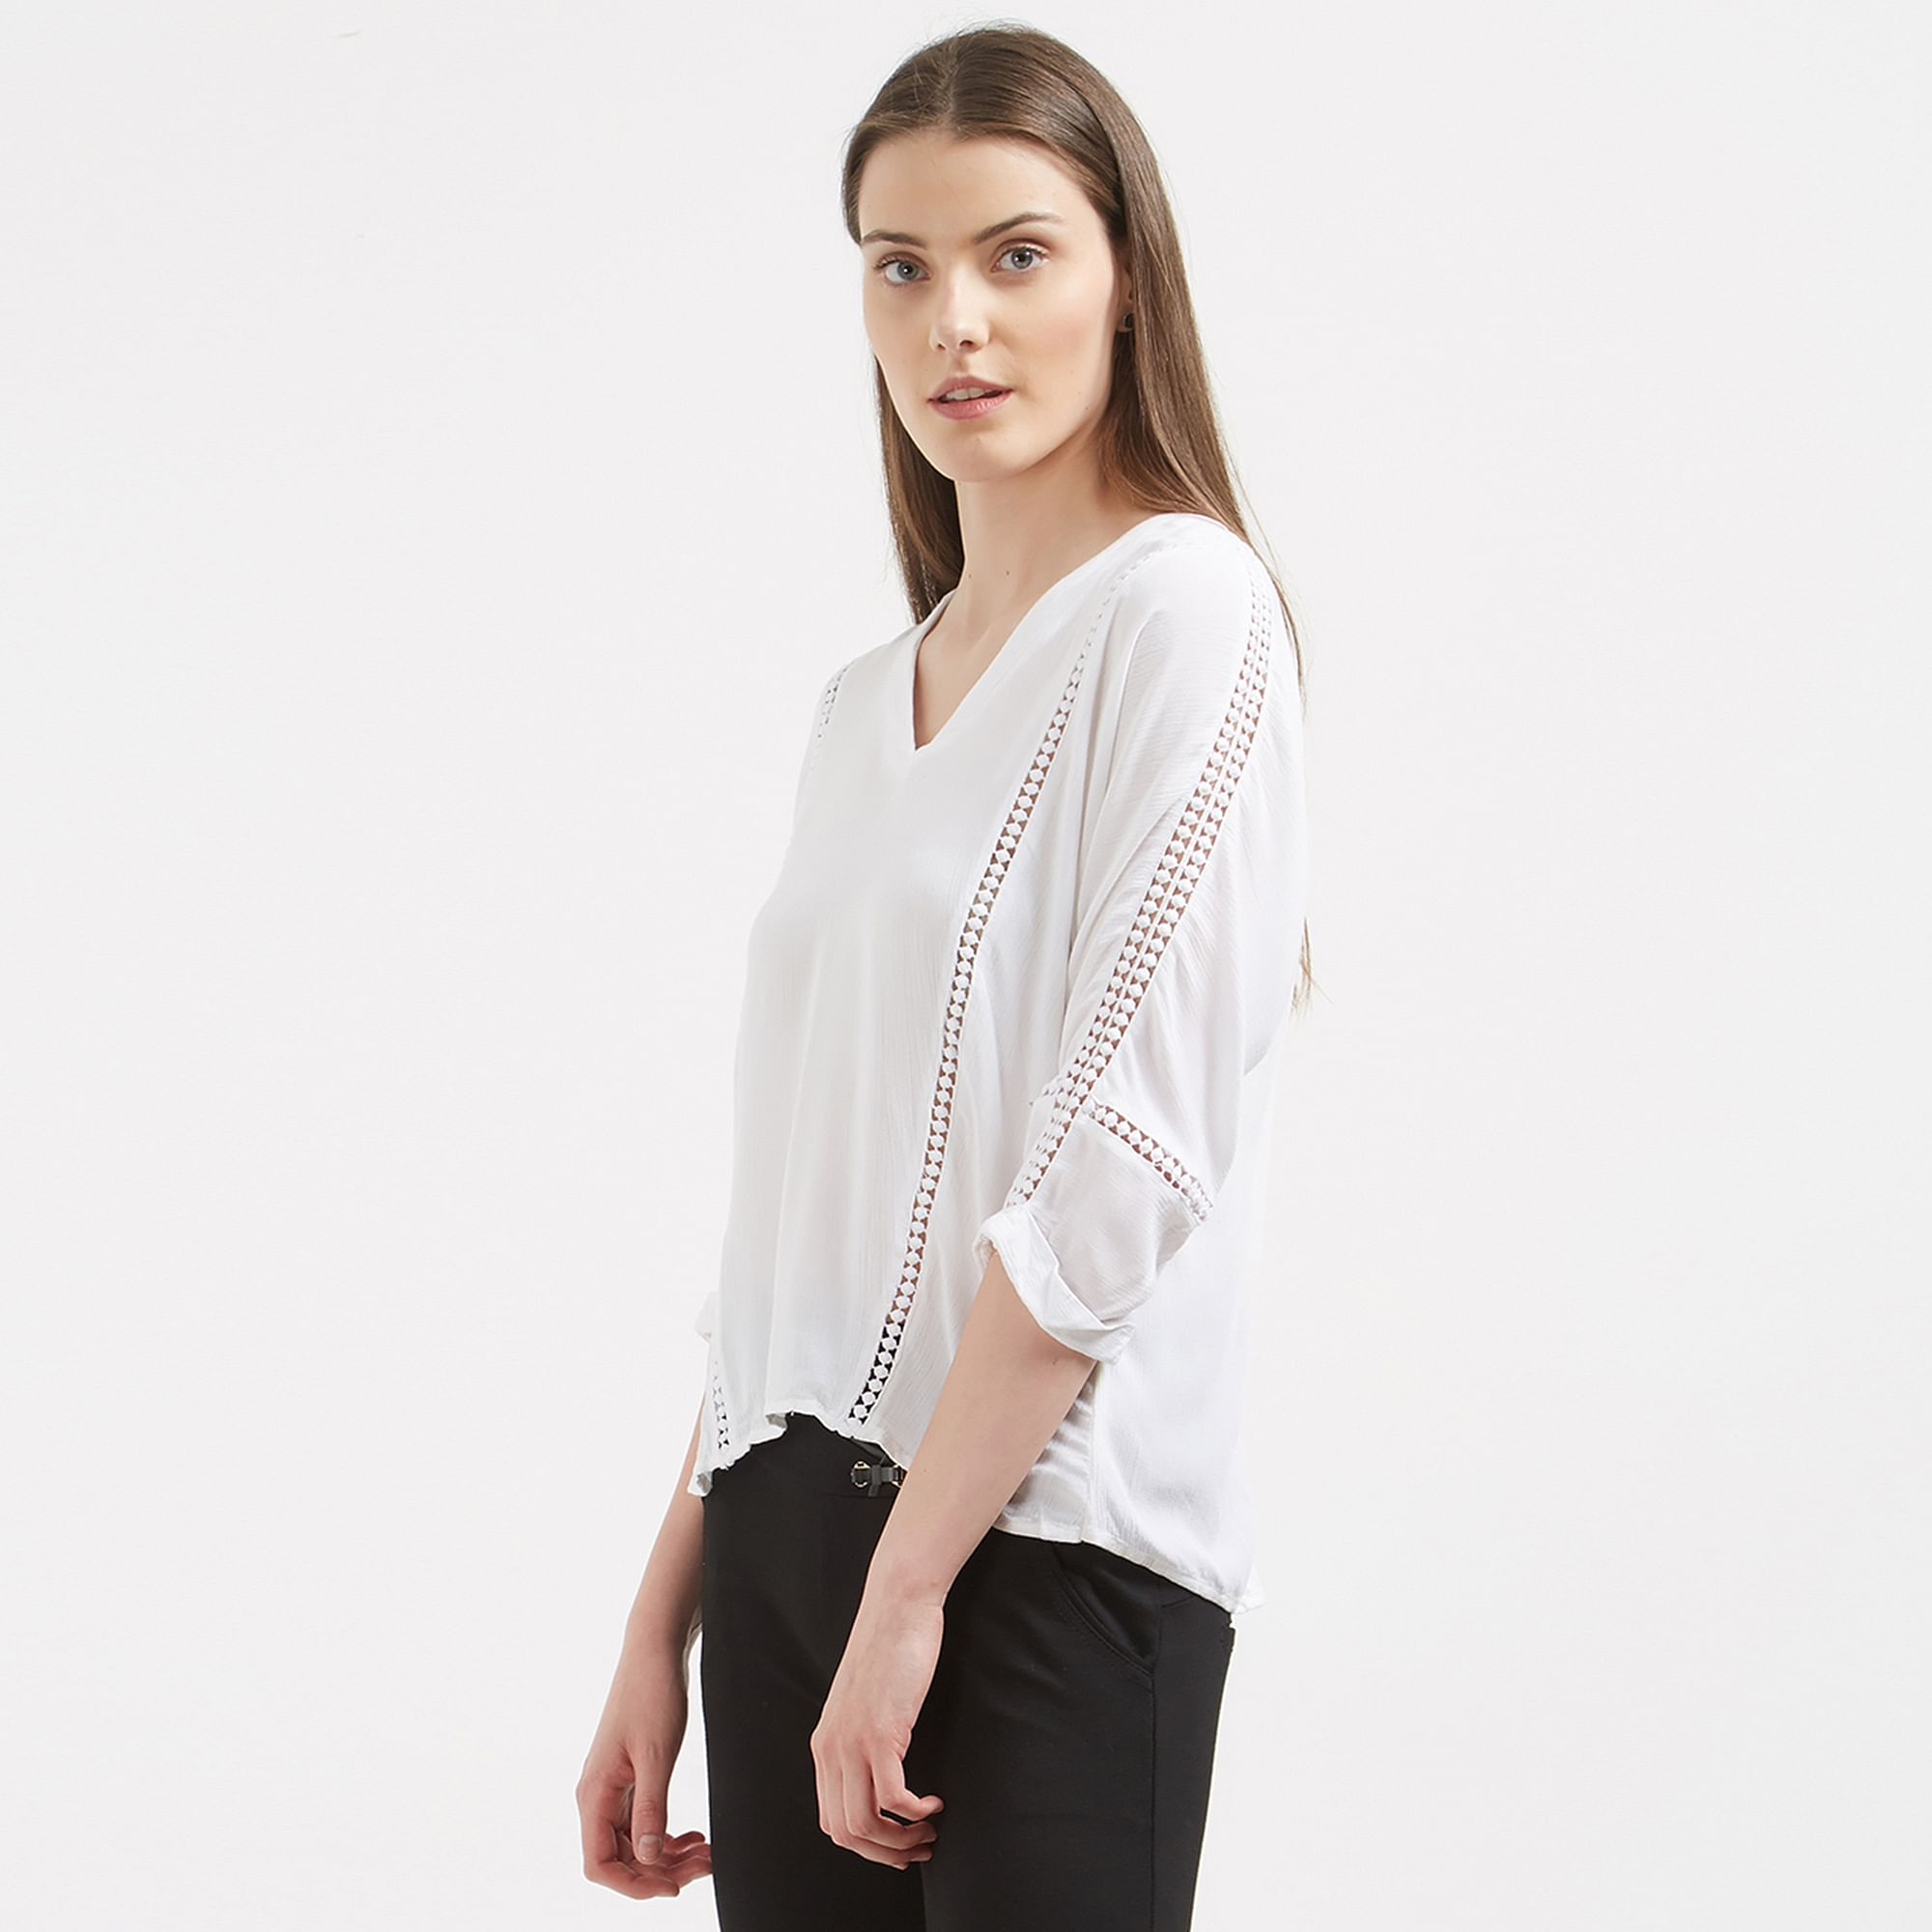 Charming White Colored Casual Wear Western Cotton Top